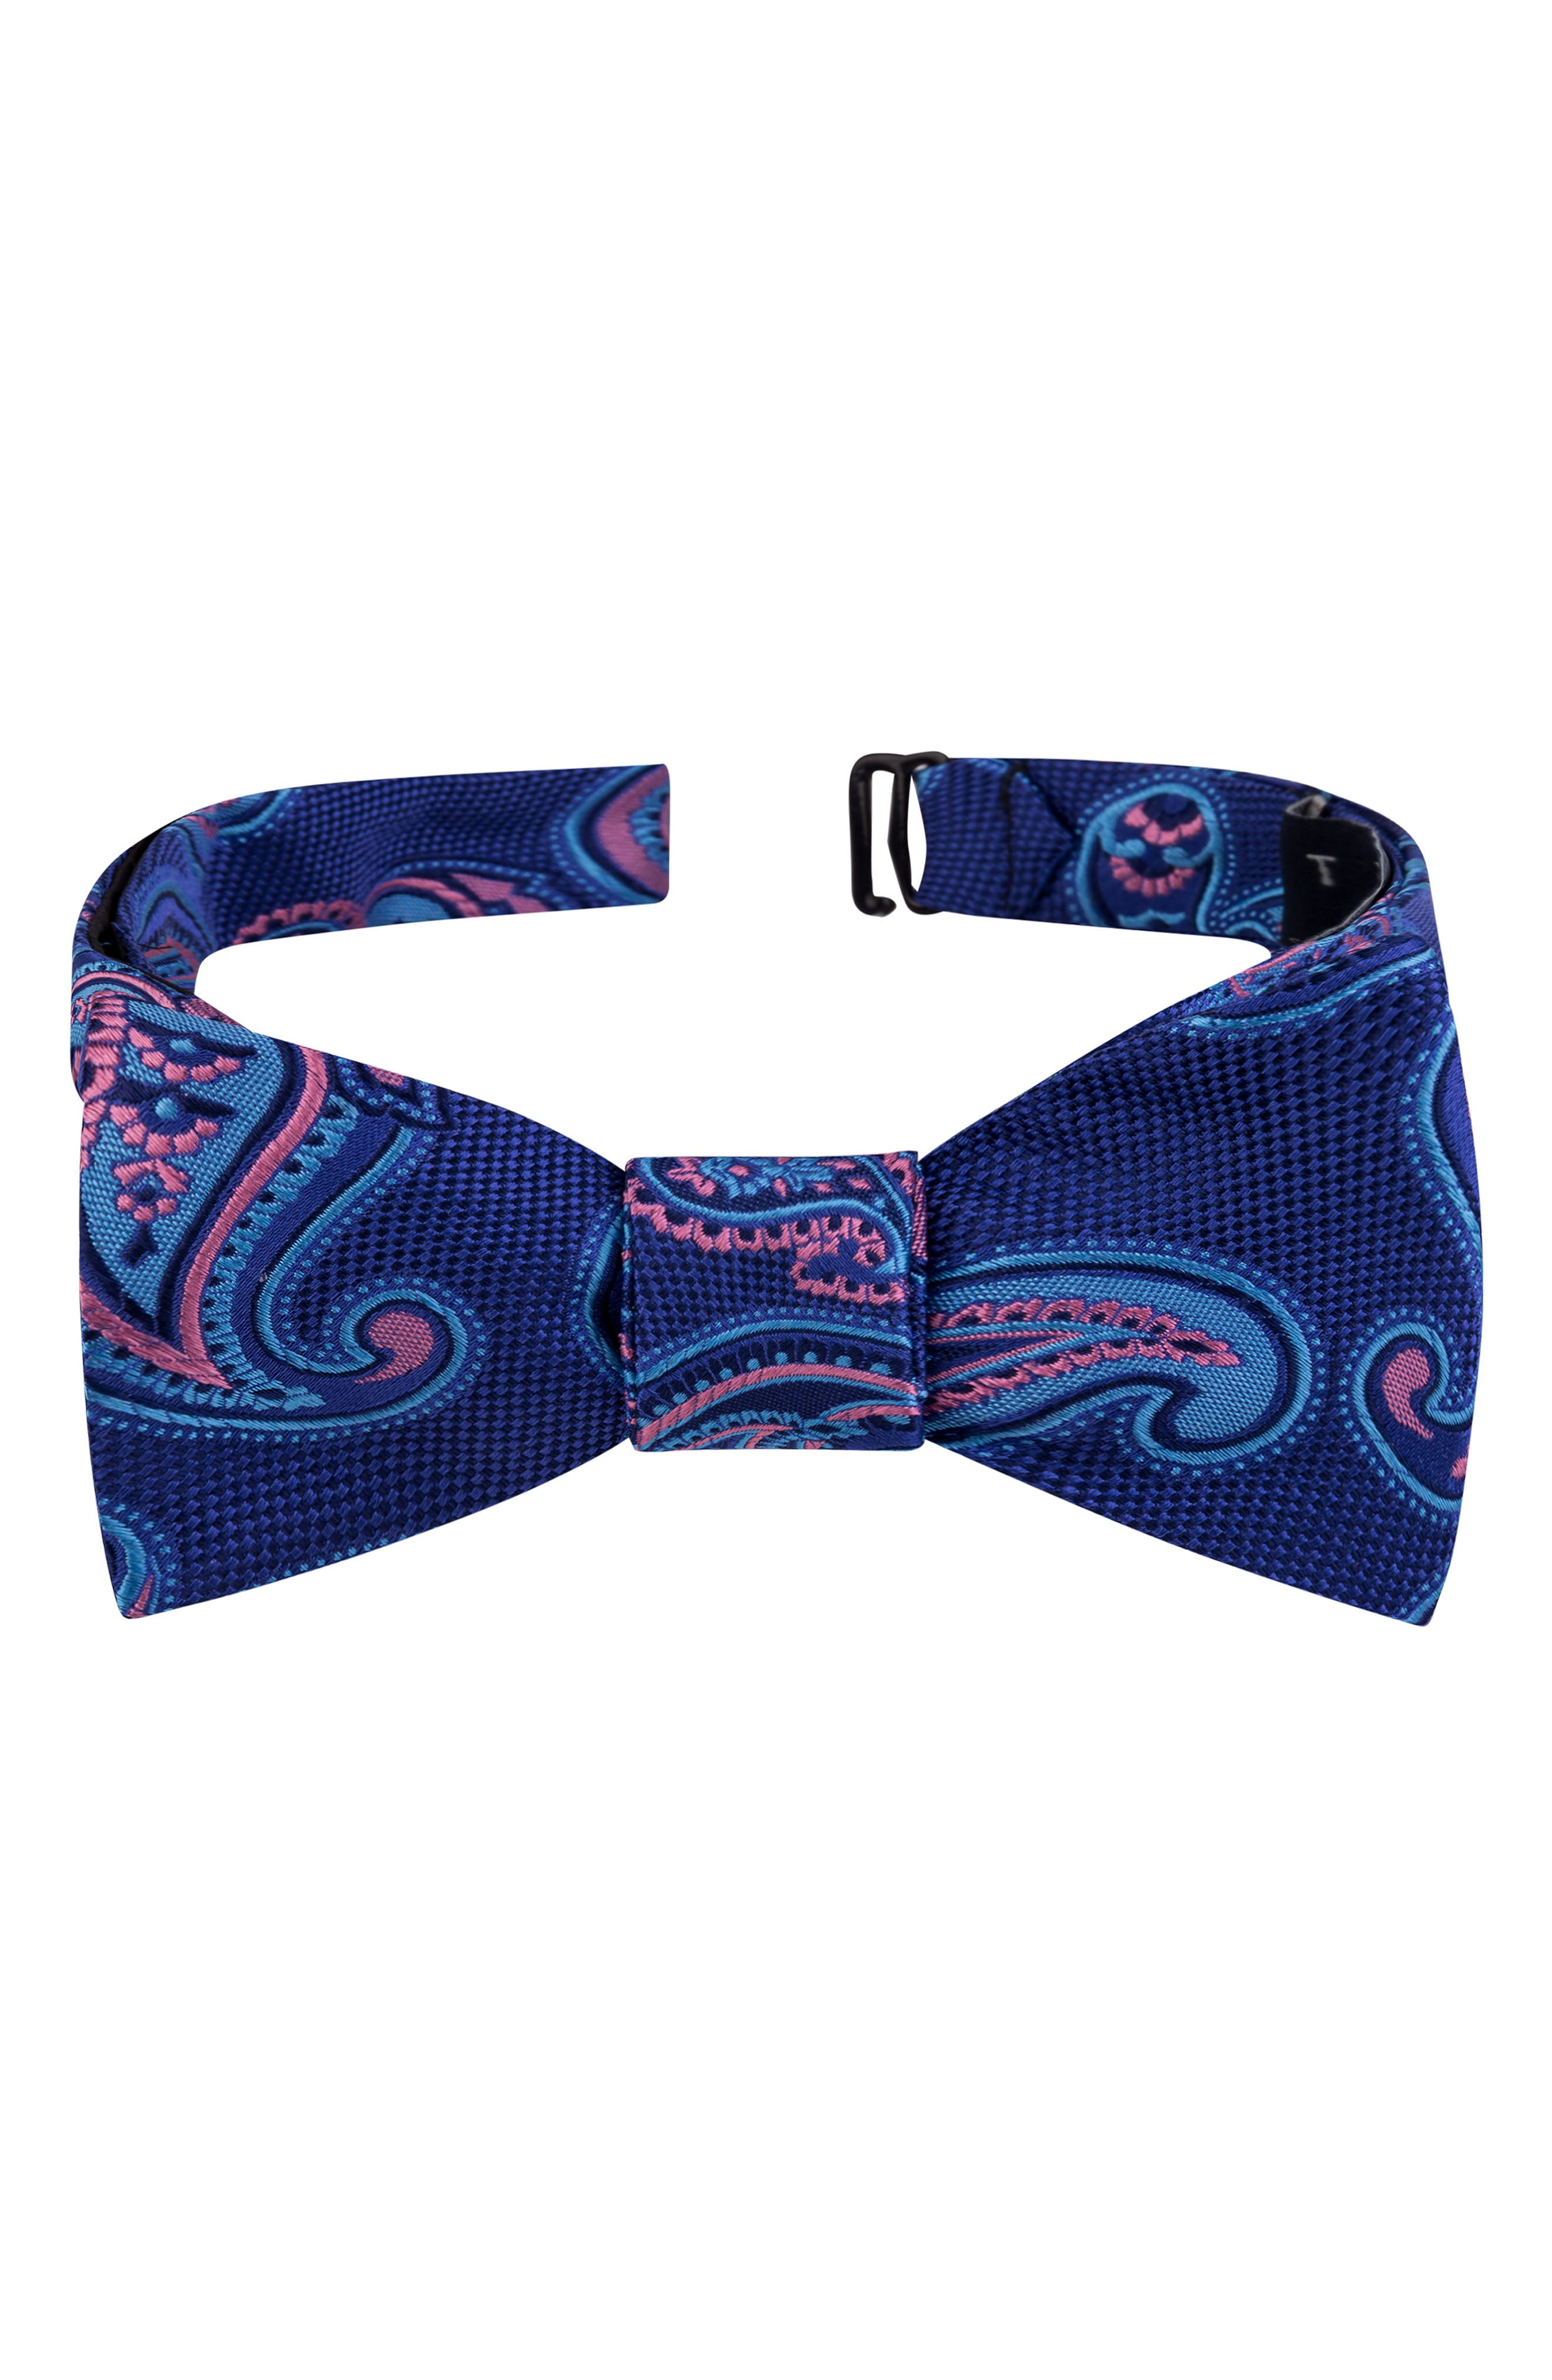 TED BAKER LONDON, Twin Pine Silk Bow Tie, Main thumbnail 1, color, BLUE